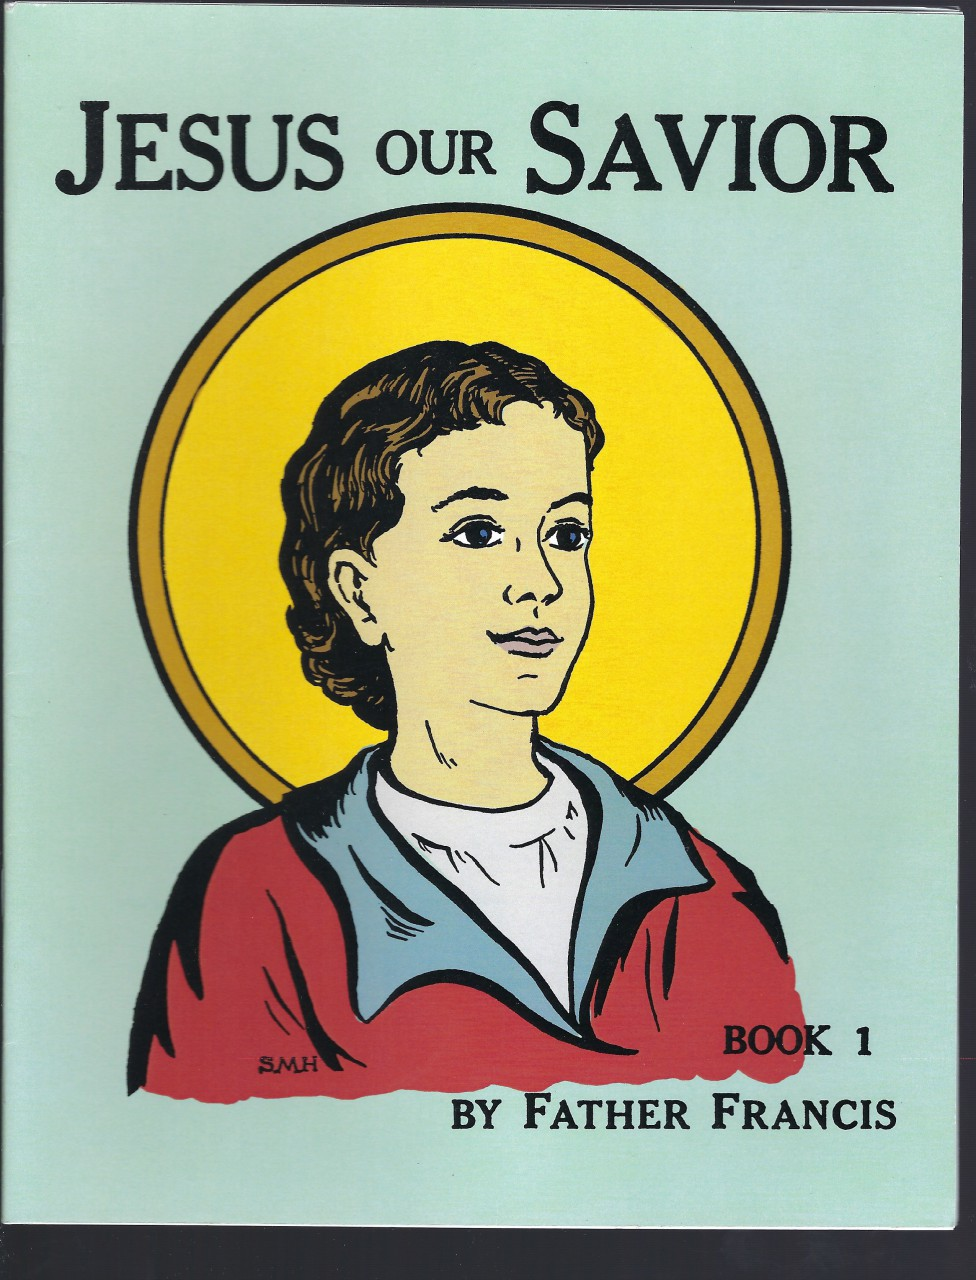 Jesus Our Savior Book 1 (The Life of Jesus for the Very Young) by Father Francis, Father Francis